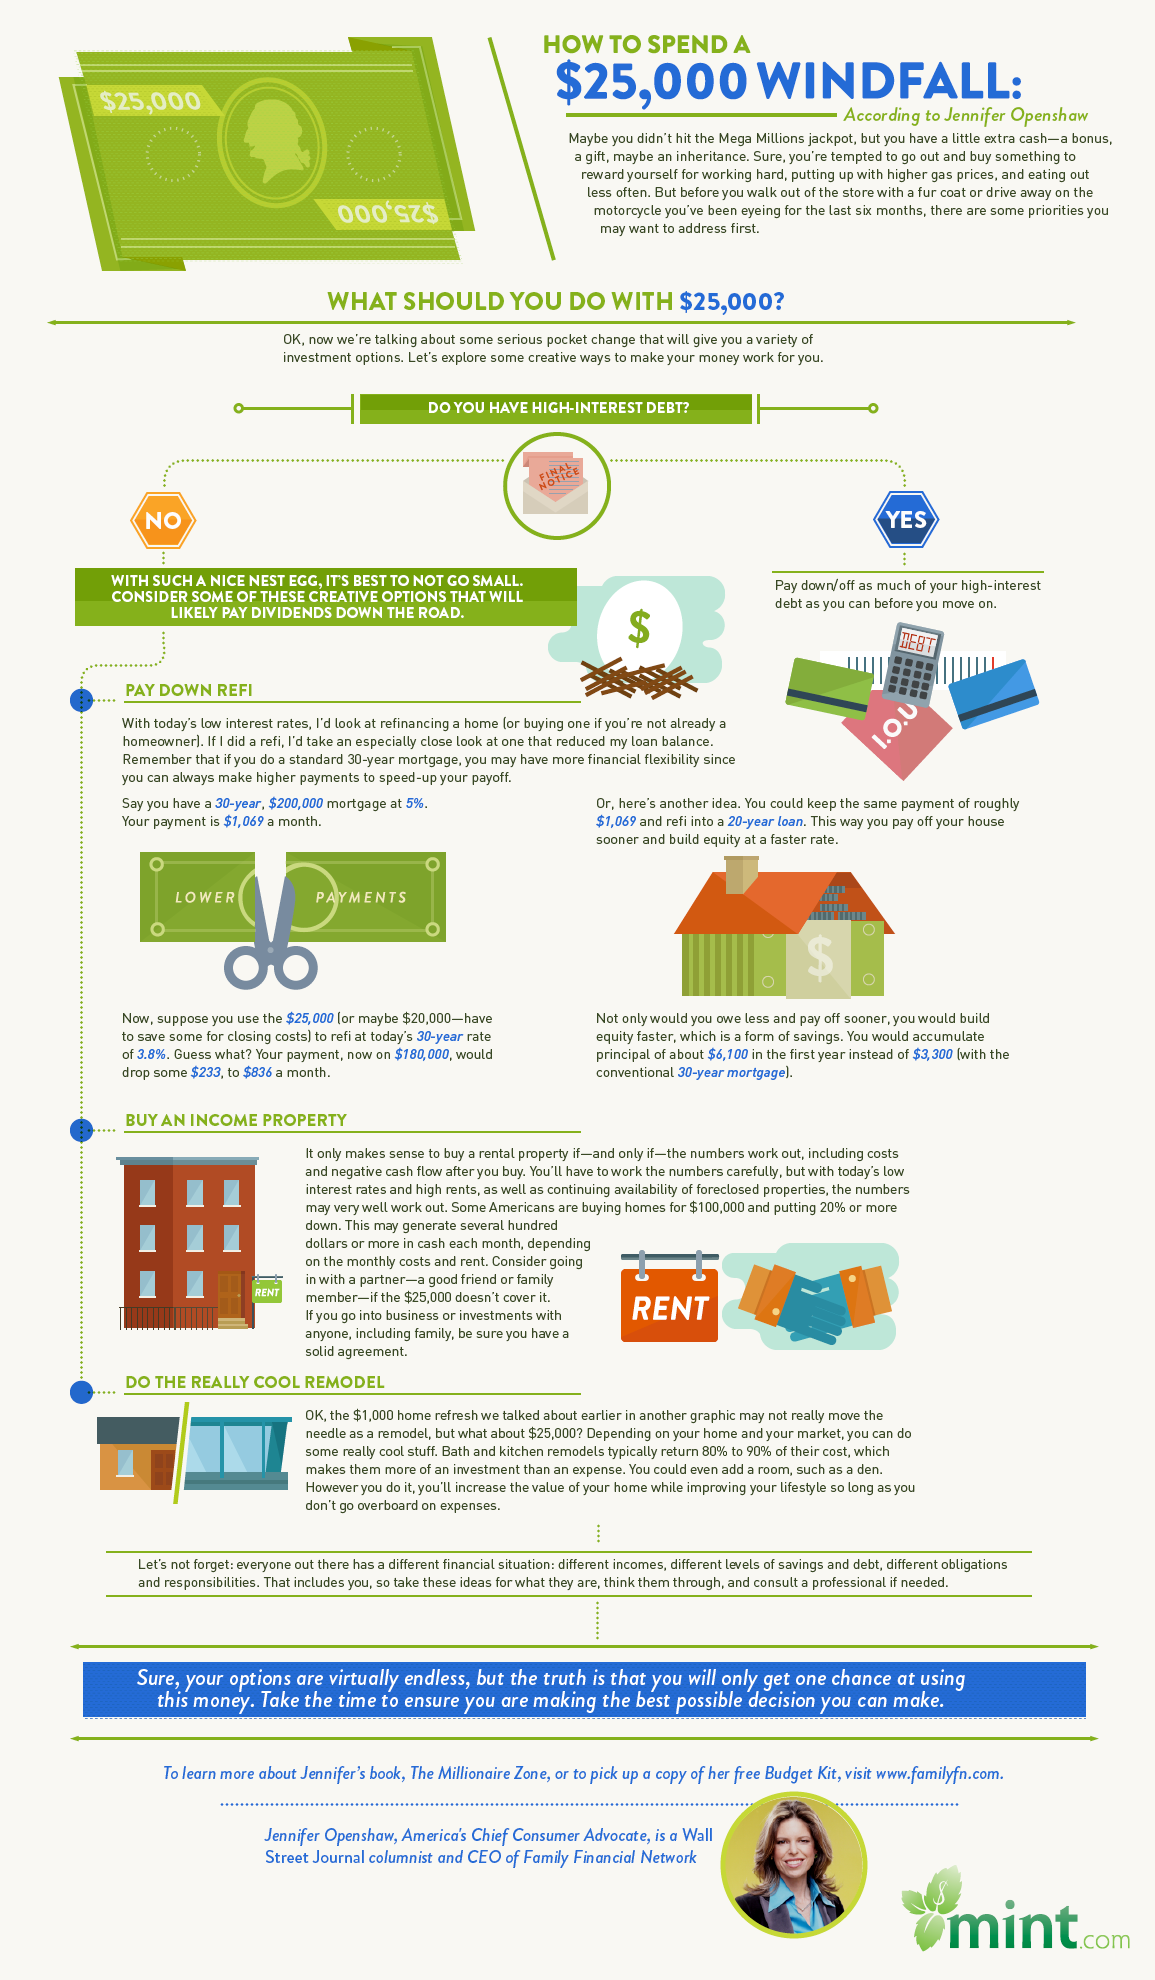 Infographic: What Should You Do with $25,000?